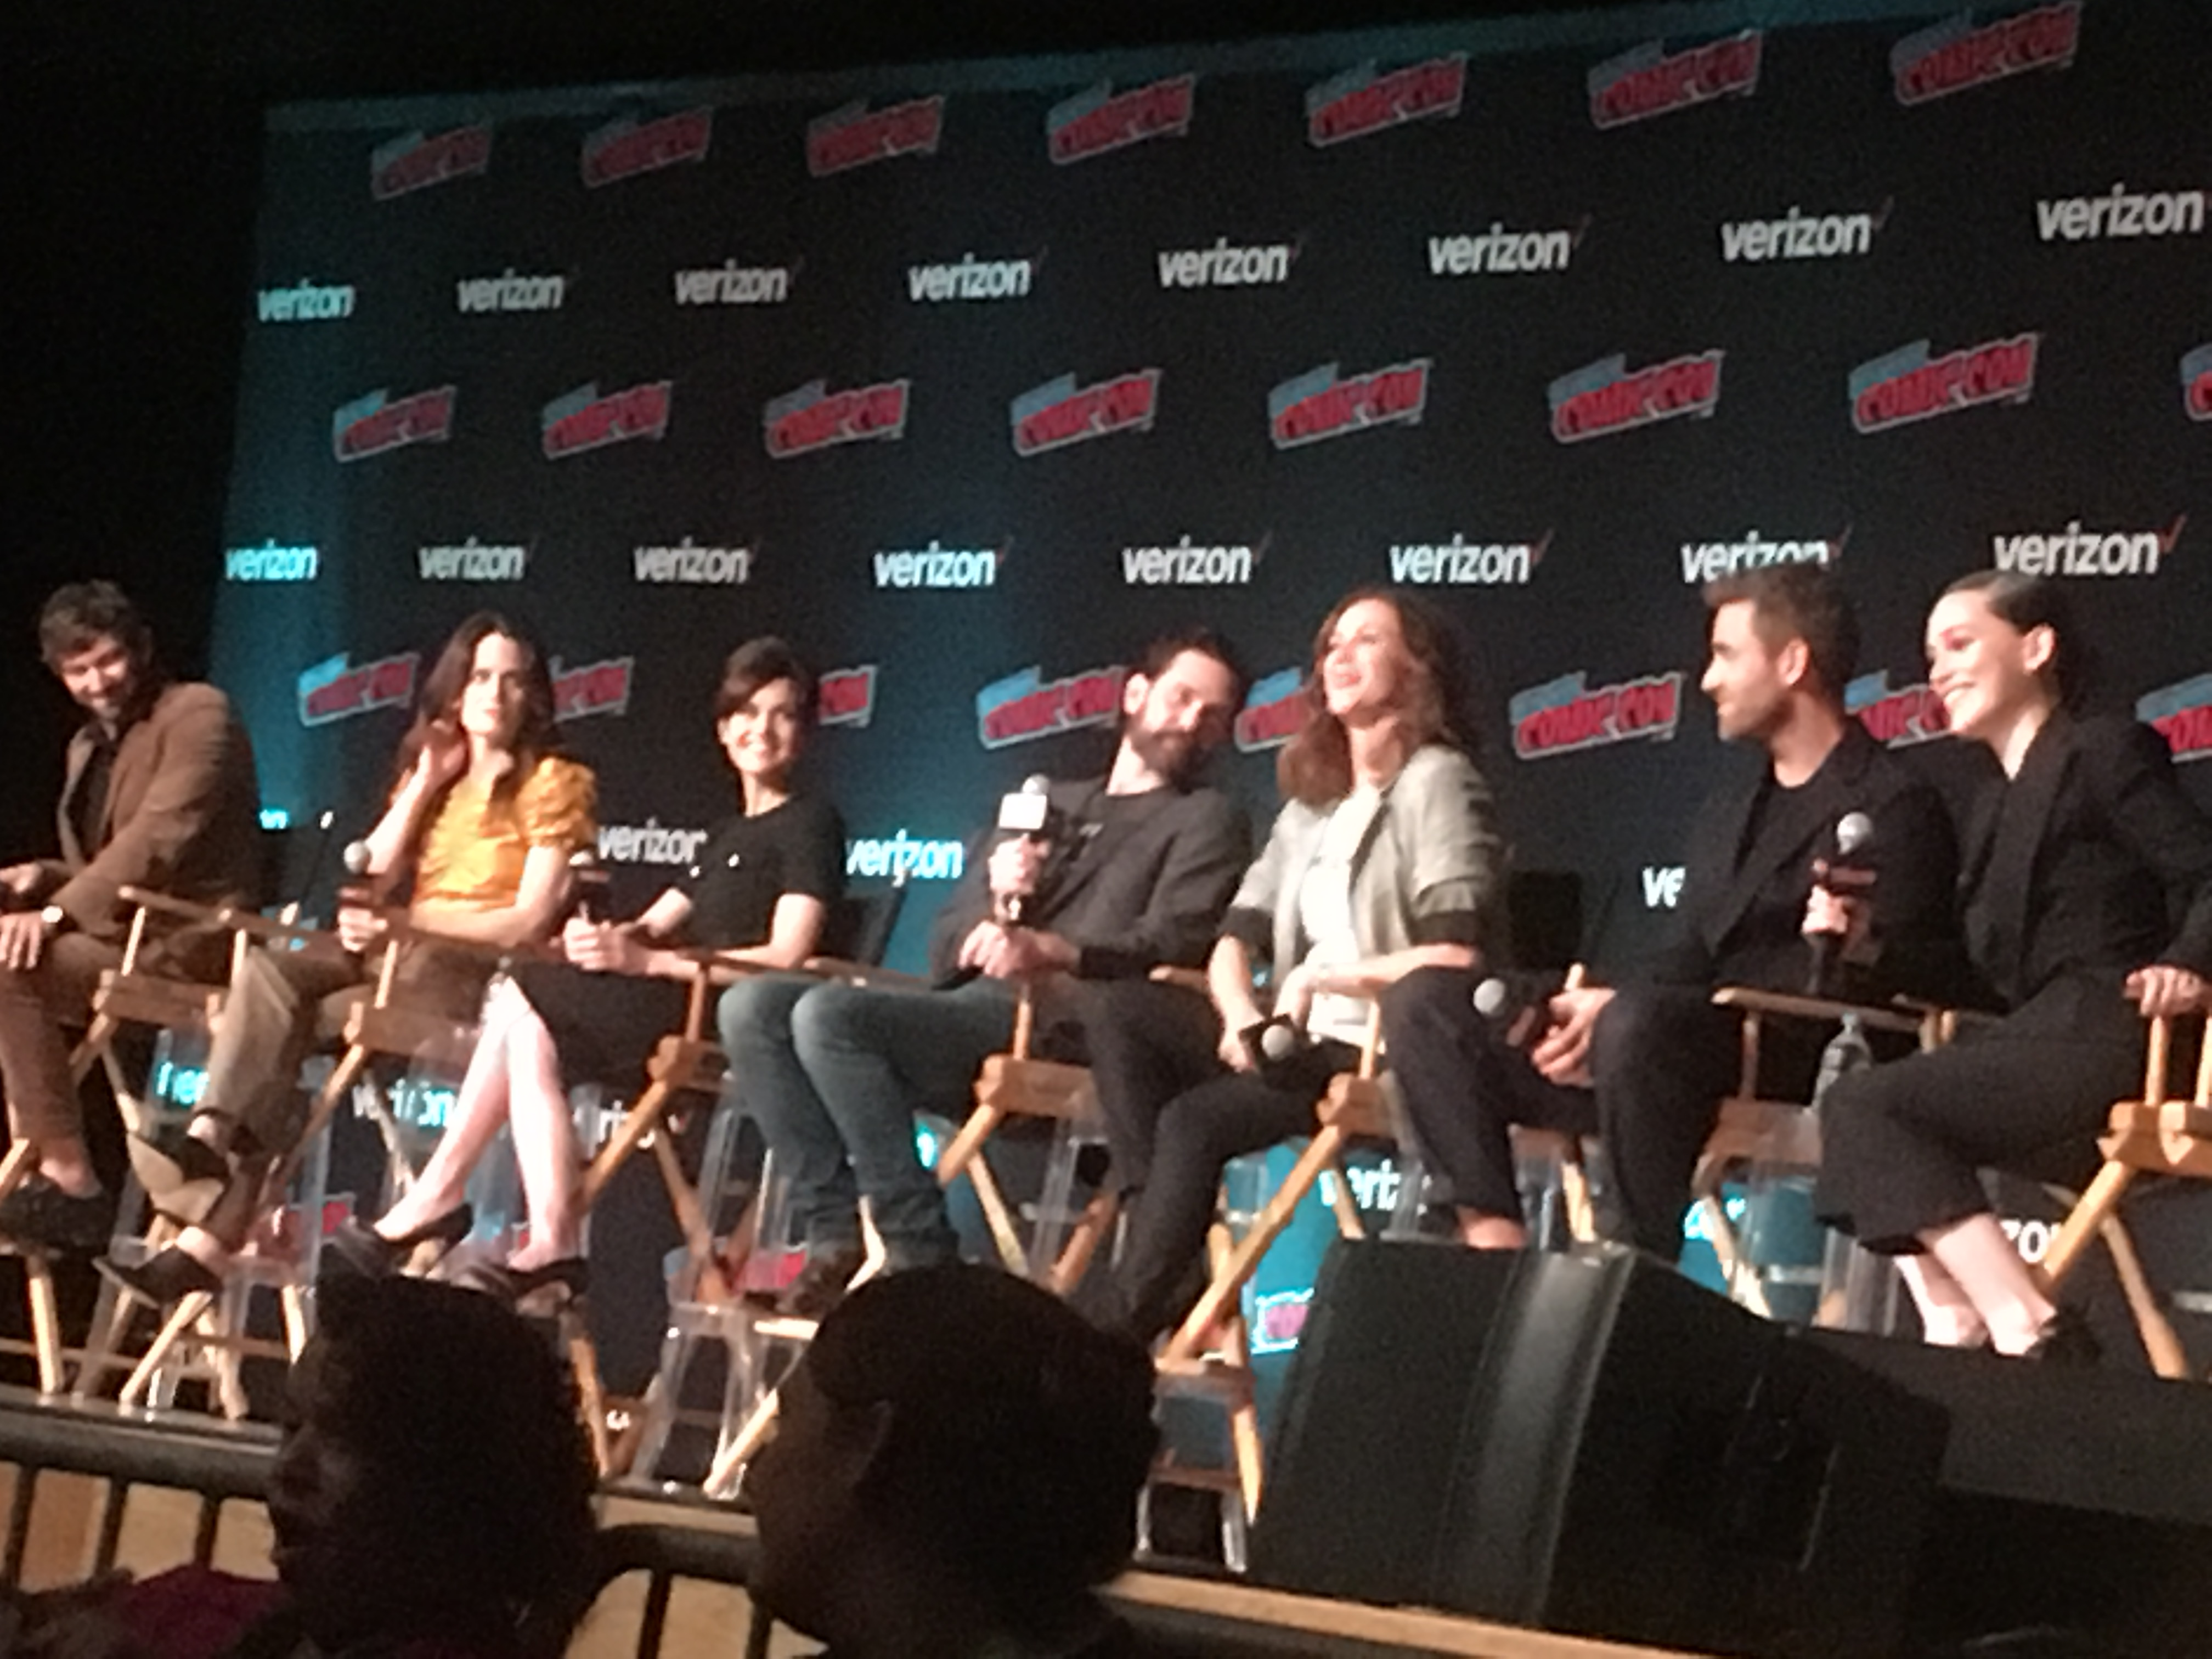 NYCC 2018 audience gets a first look at Netflix's 'The Haunting of Hill House'